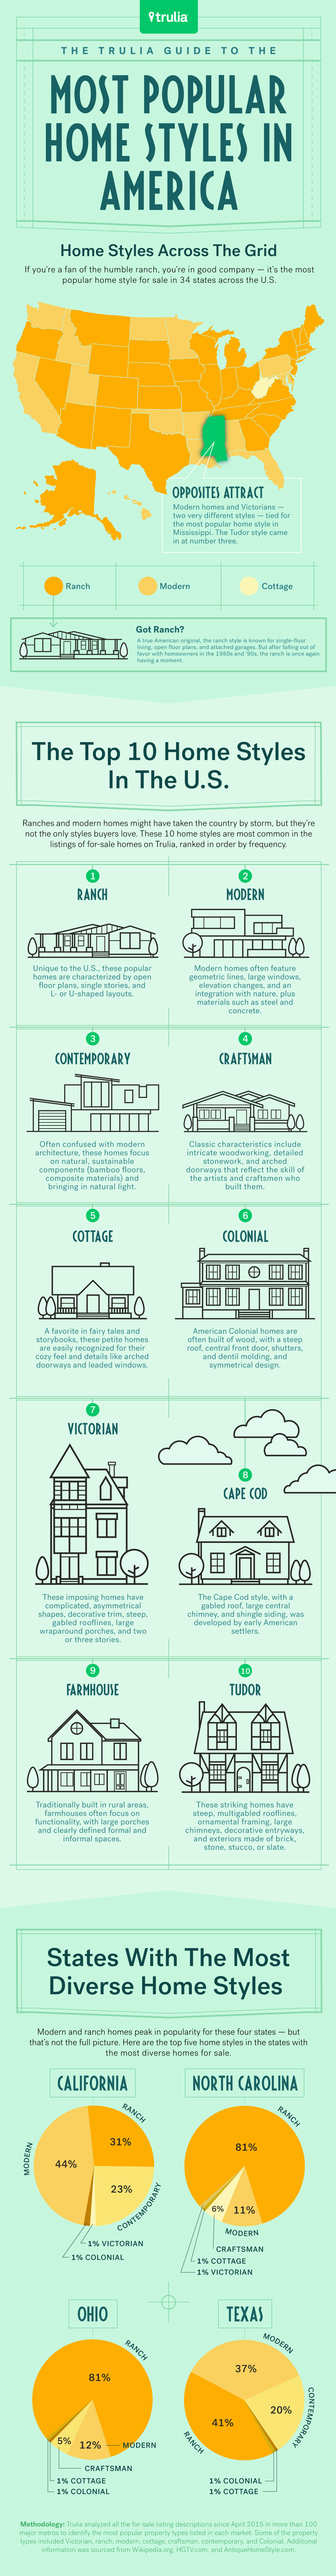 Trulia-Miles-Quillen-Infographic-Most-Popular-Home-Styles-In-America